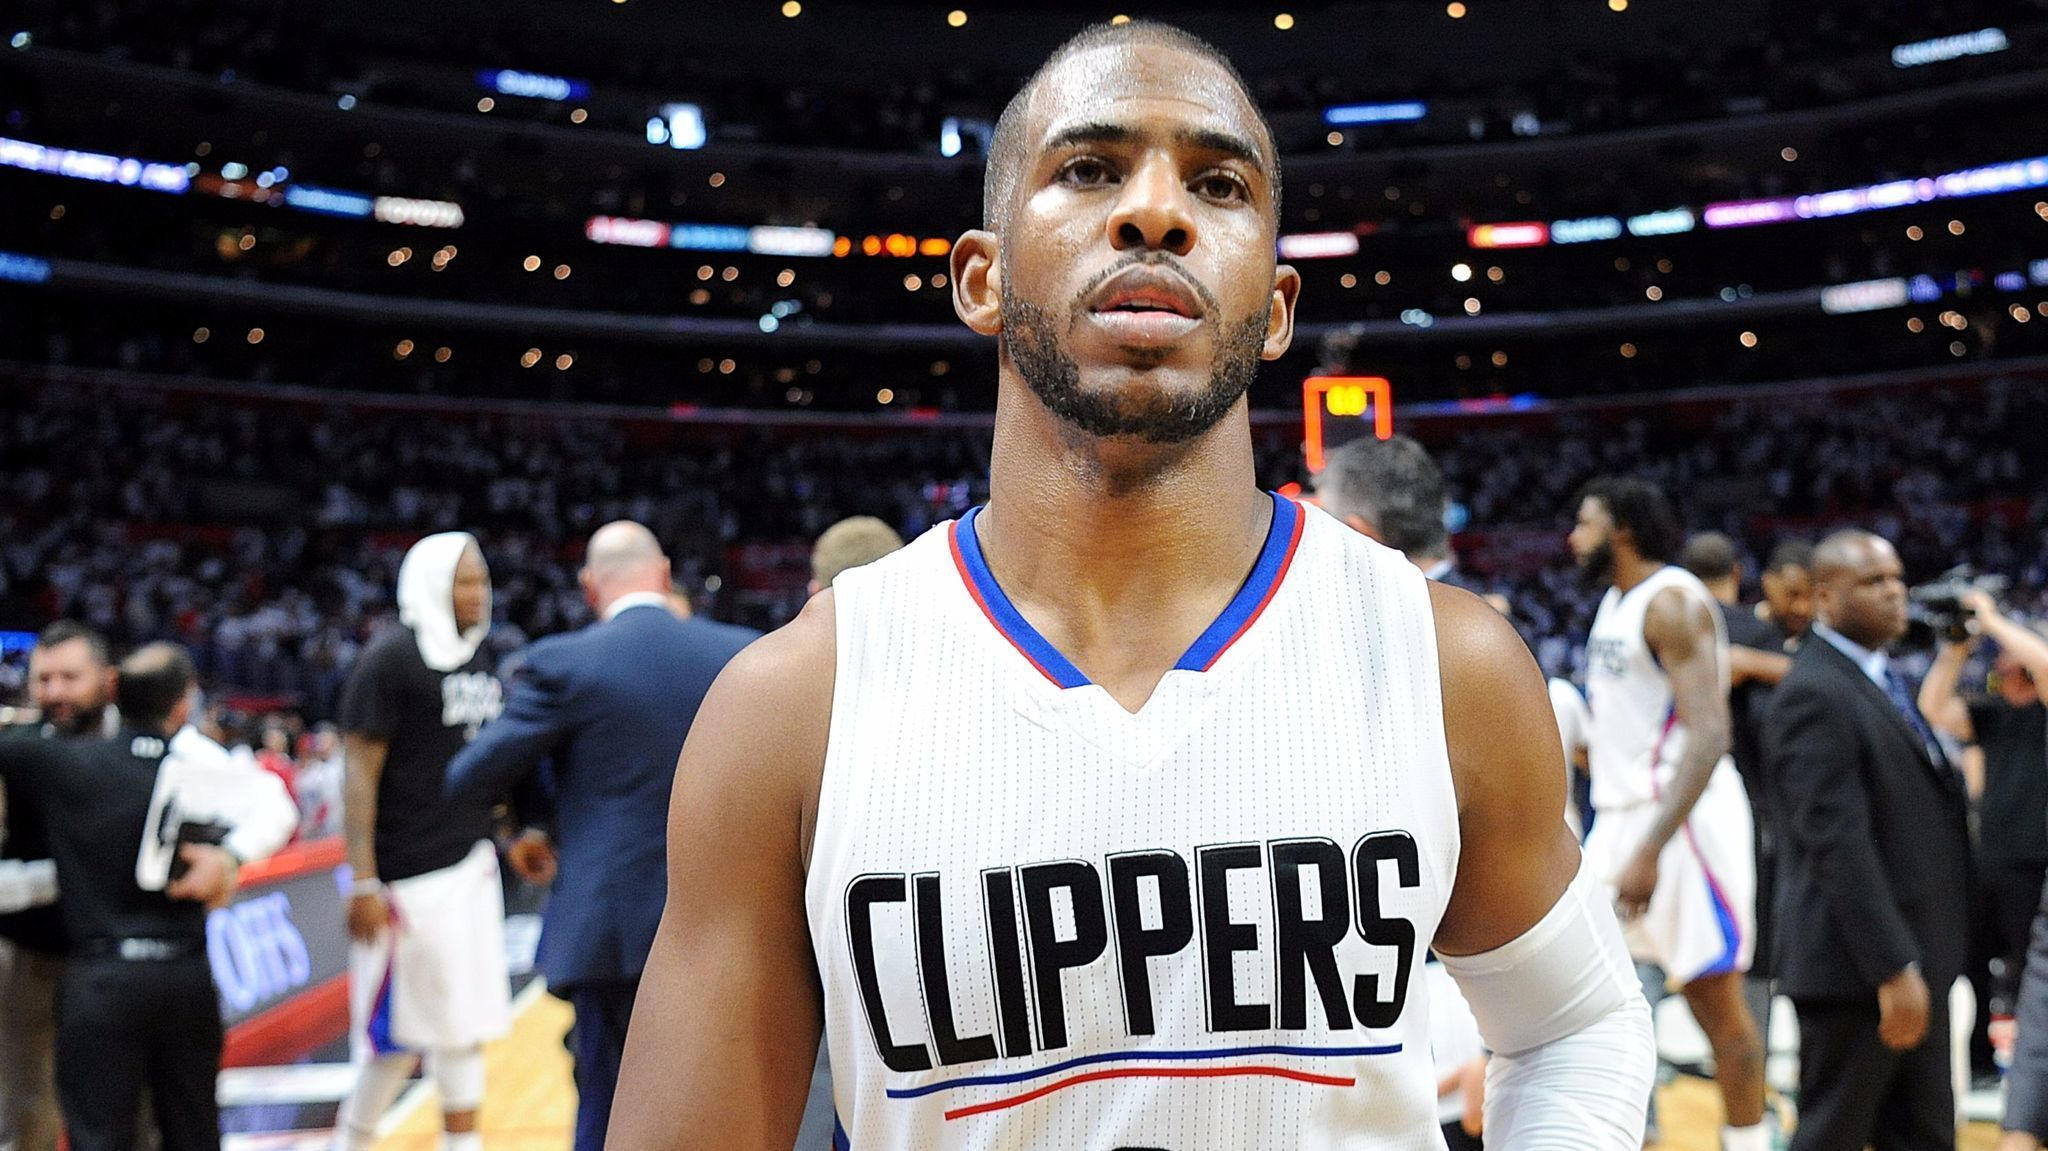 Clippers trade Chris Paul to Rockets - LA Times